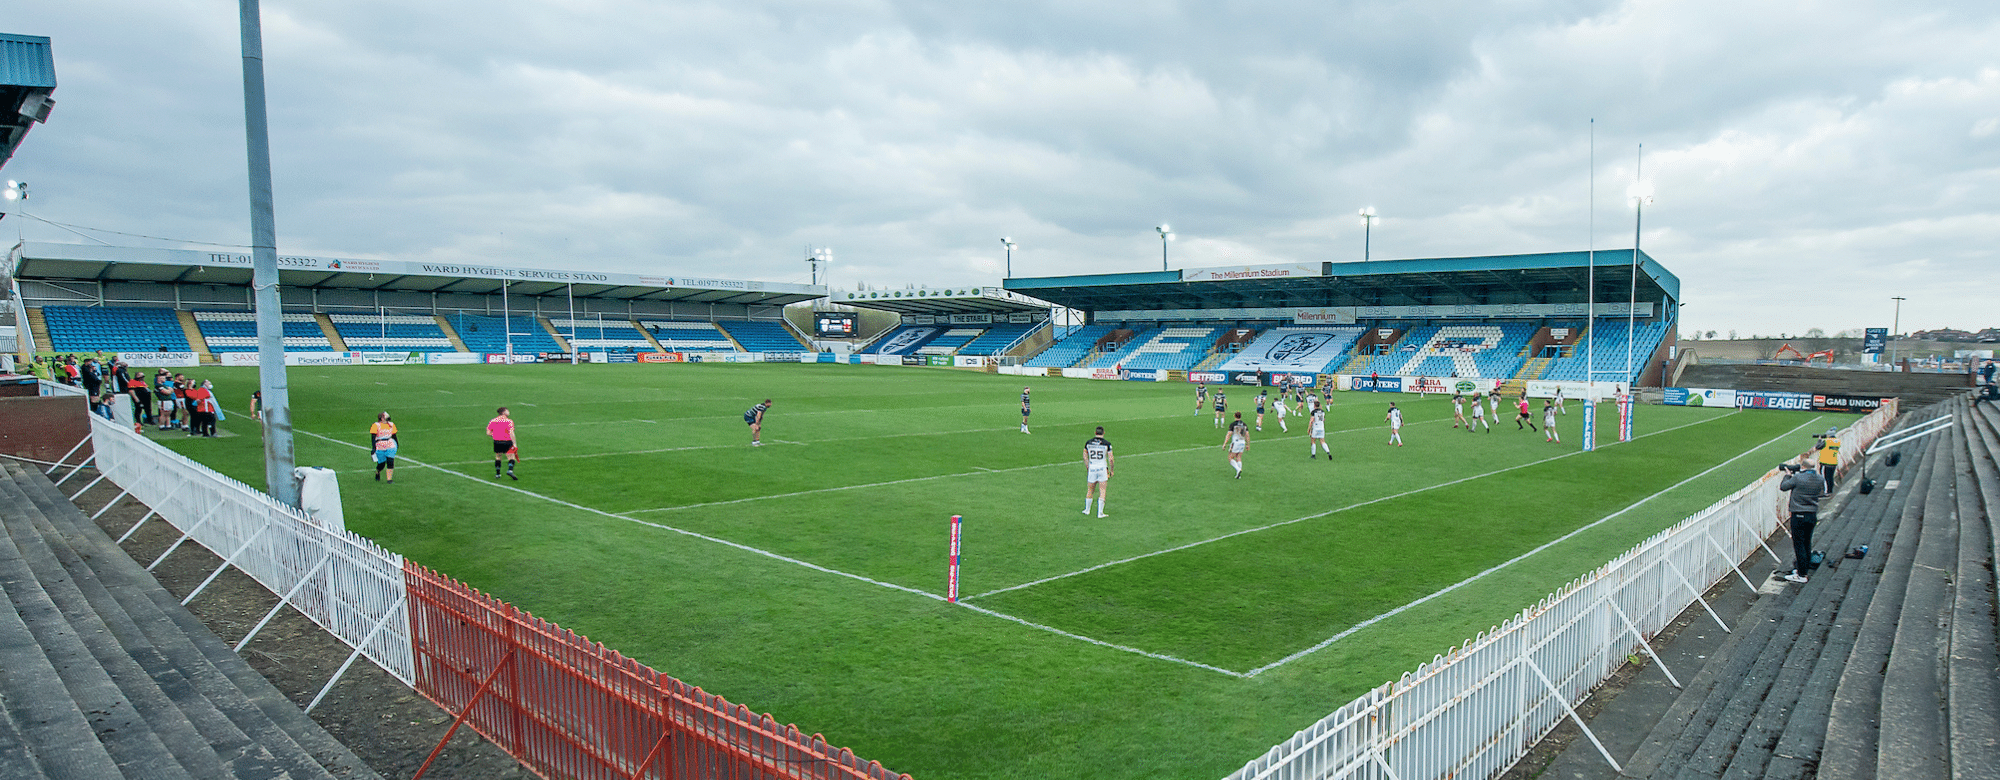 Up Next: Featherstone Rovers (A)